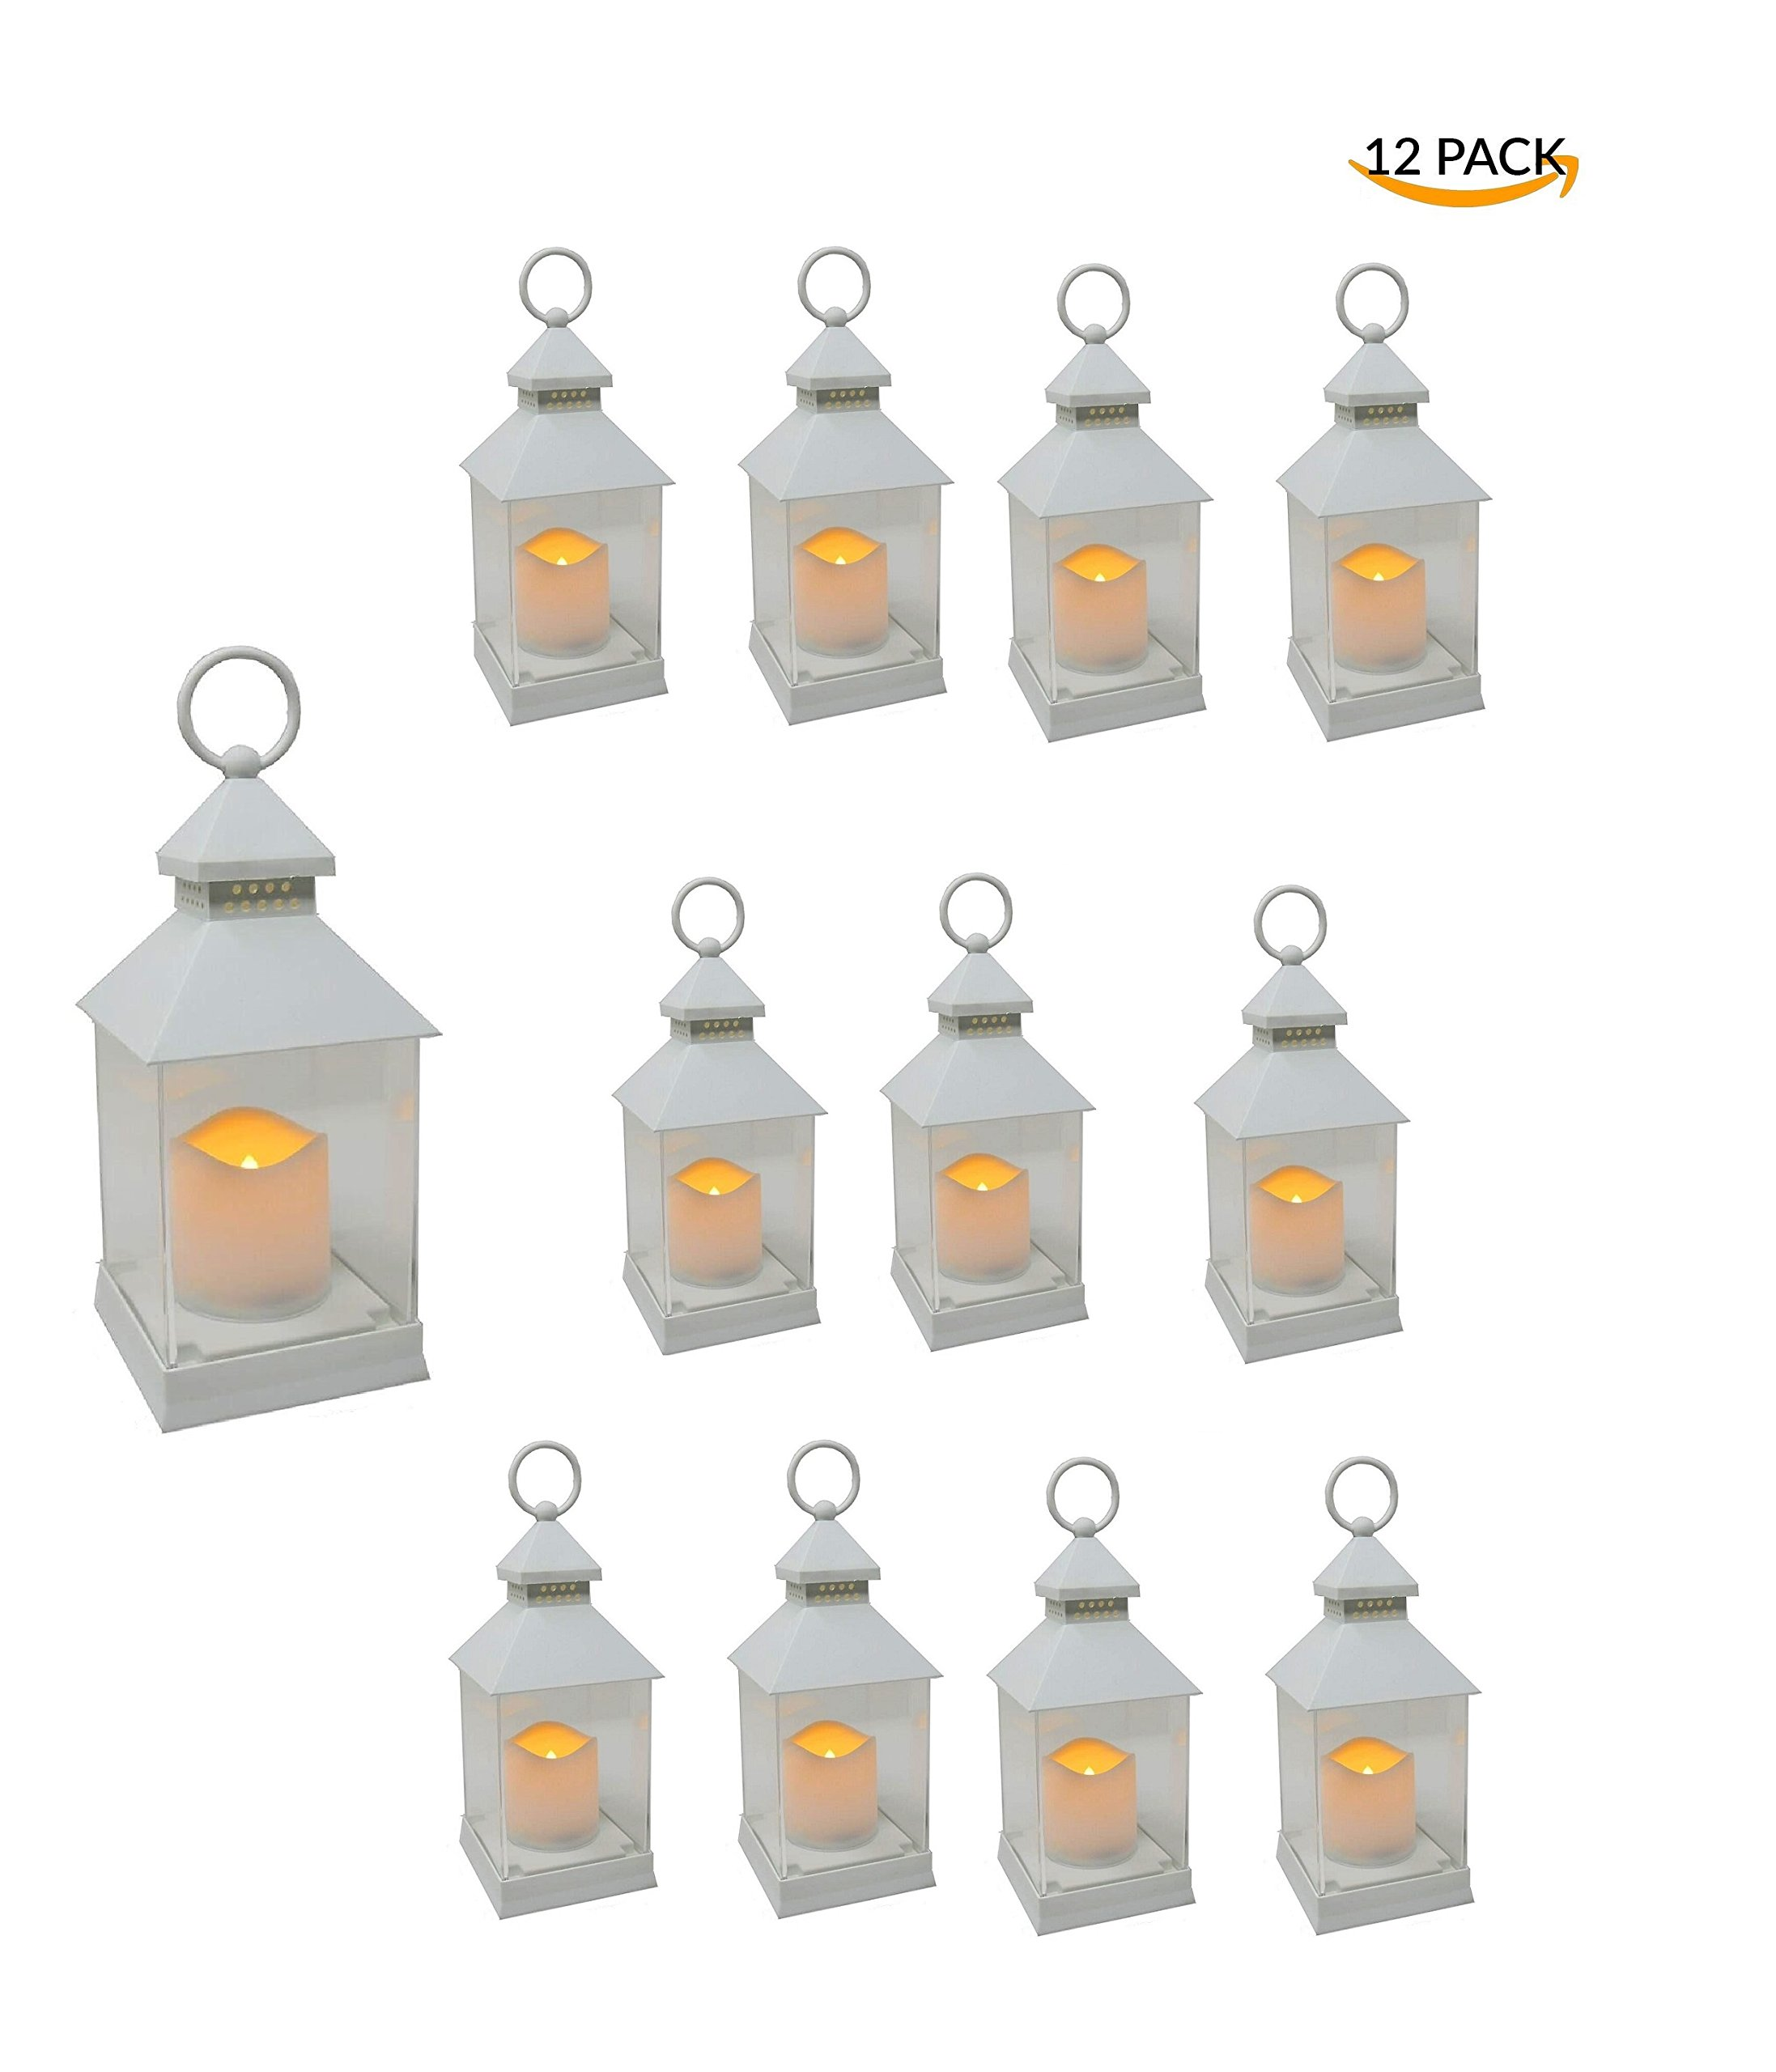 Just In Time for Spring {12 Pc SET} - 10'' Decorative Lanterns With Flameless LED Lighted Candle 5 Hr Timer Modern Look Indoor Outdoor Home, Garden, Weddings - Includes Bonus String Lights! White.